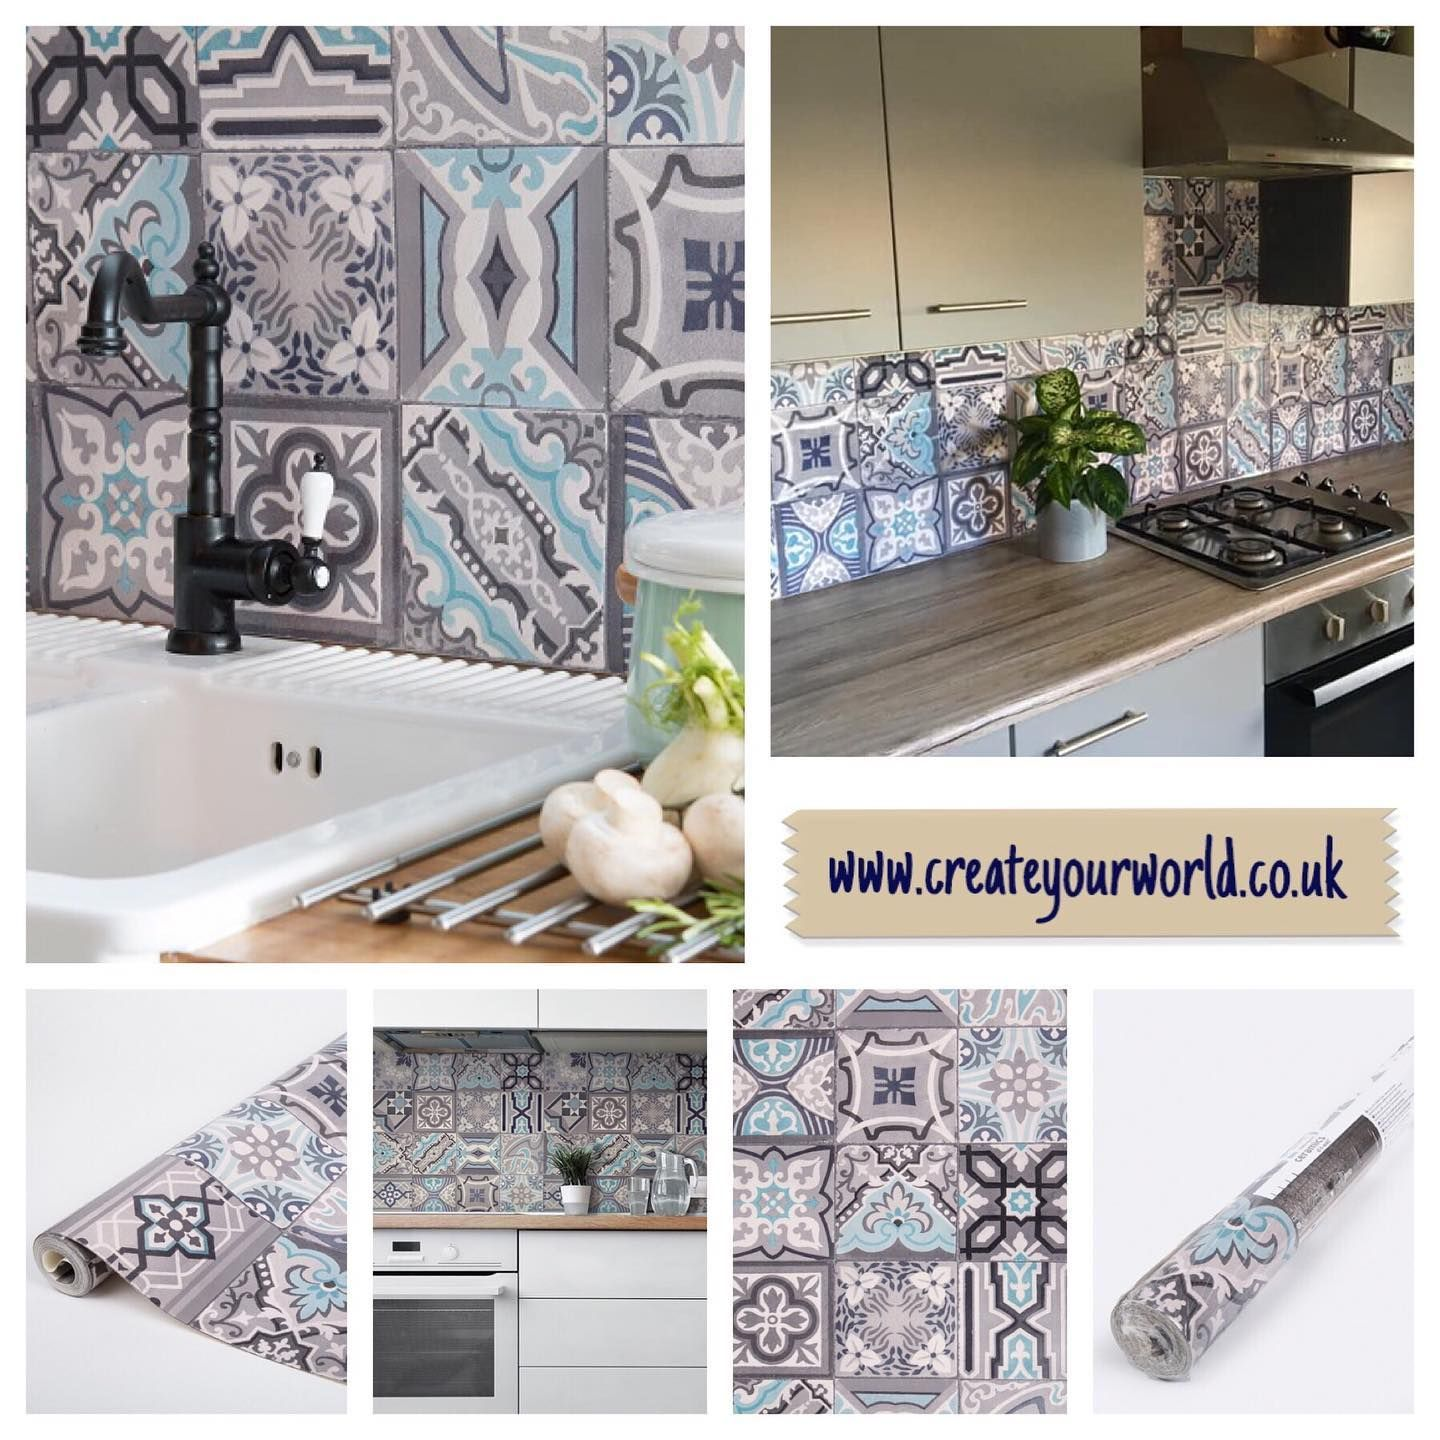 Kitchen Splashback On A Roll Using This 3d Thick Wallpaper That S Both Durable And Waterproof When Sealed Can Be Splashback Splashback Tiles Thick Wallpaper